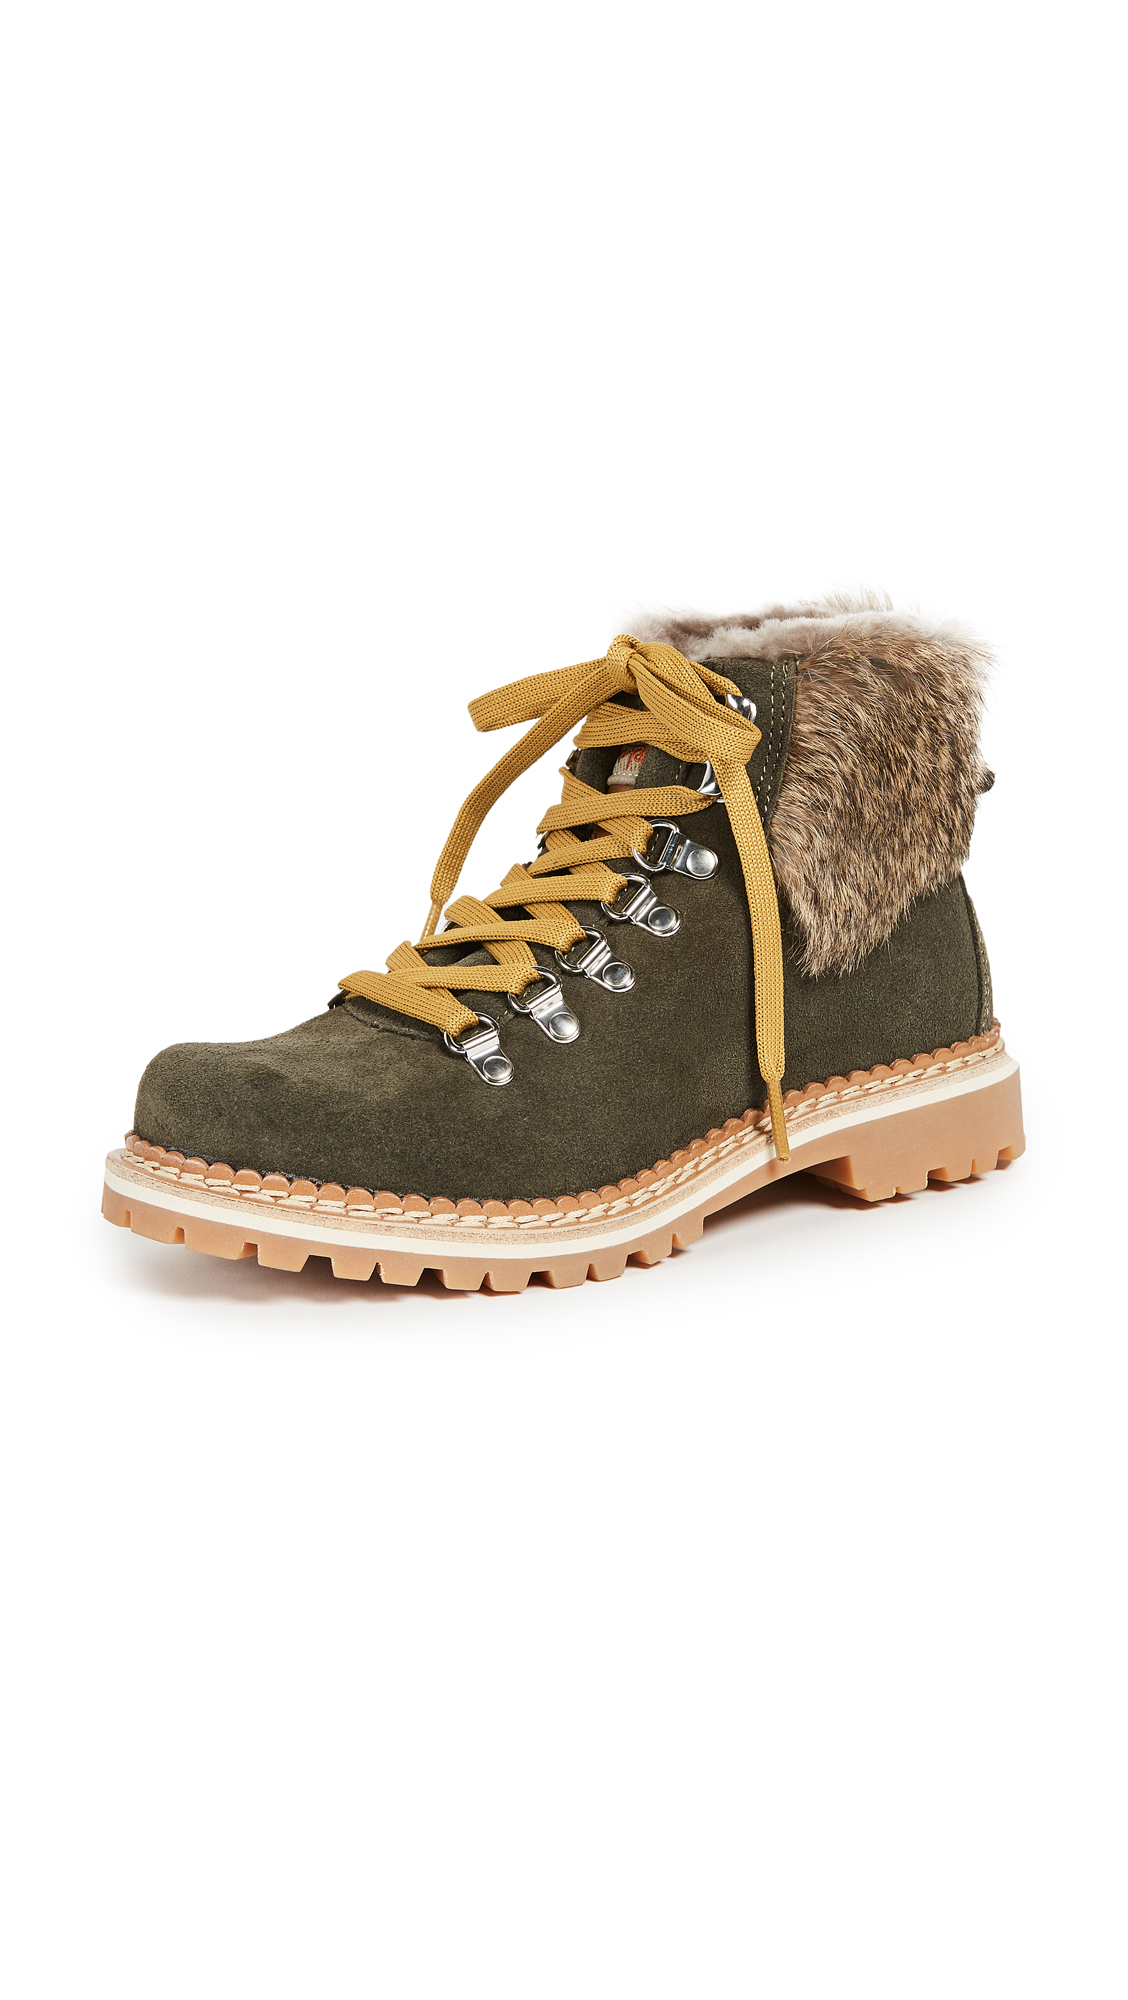 Photo of Montelliana Camelia Hiker Boots online shoes sales